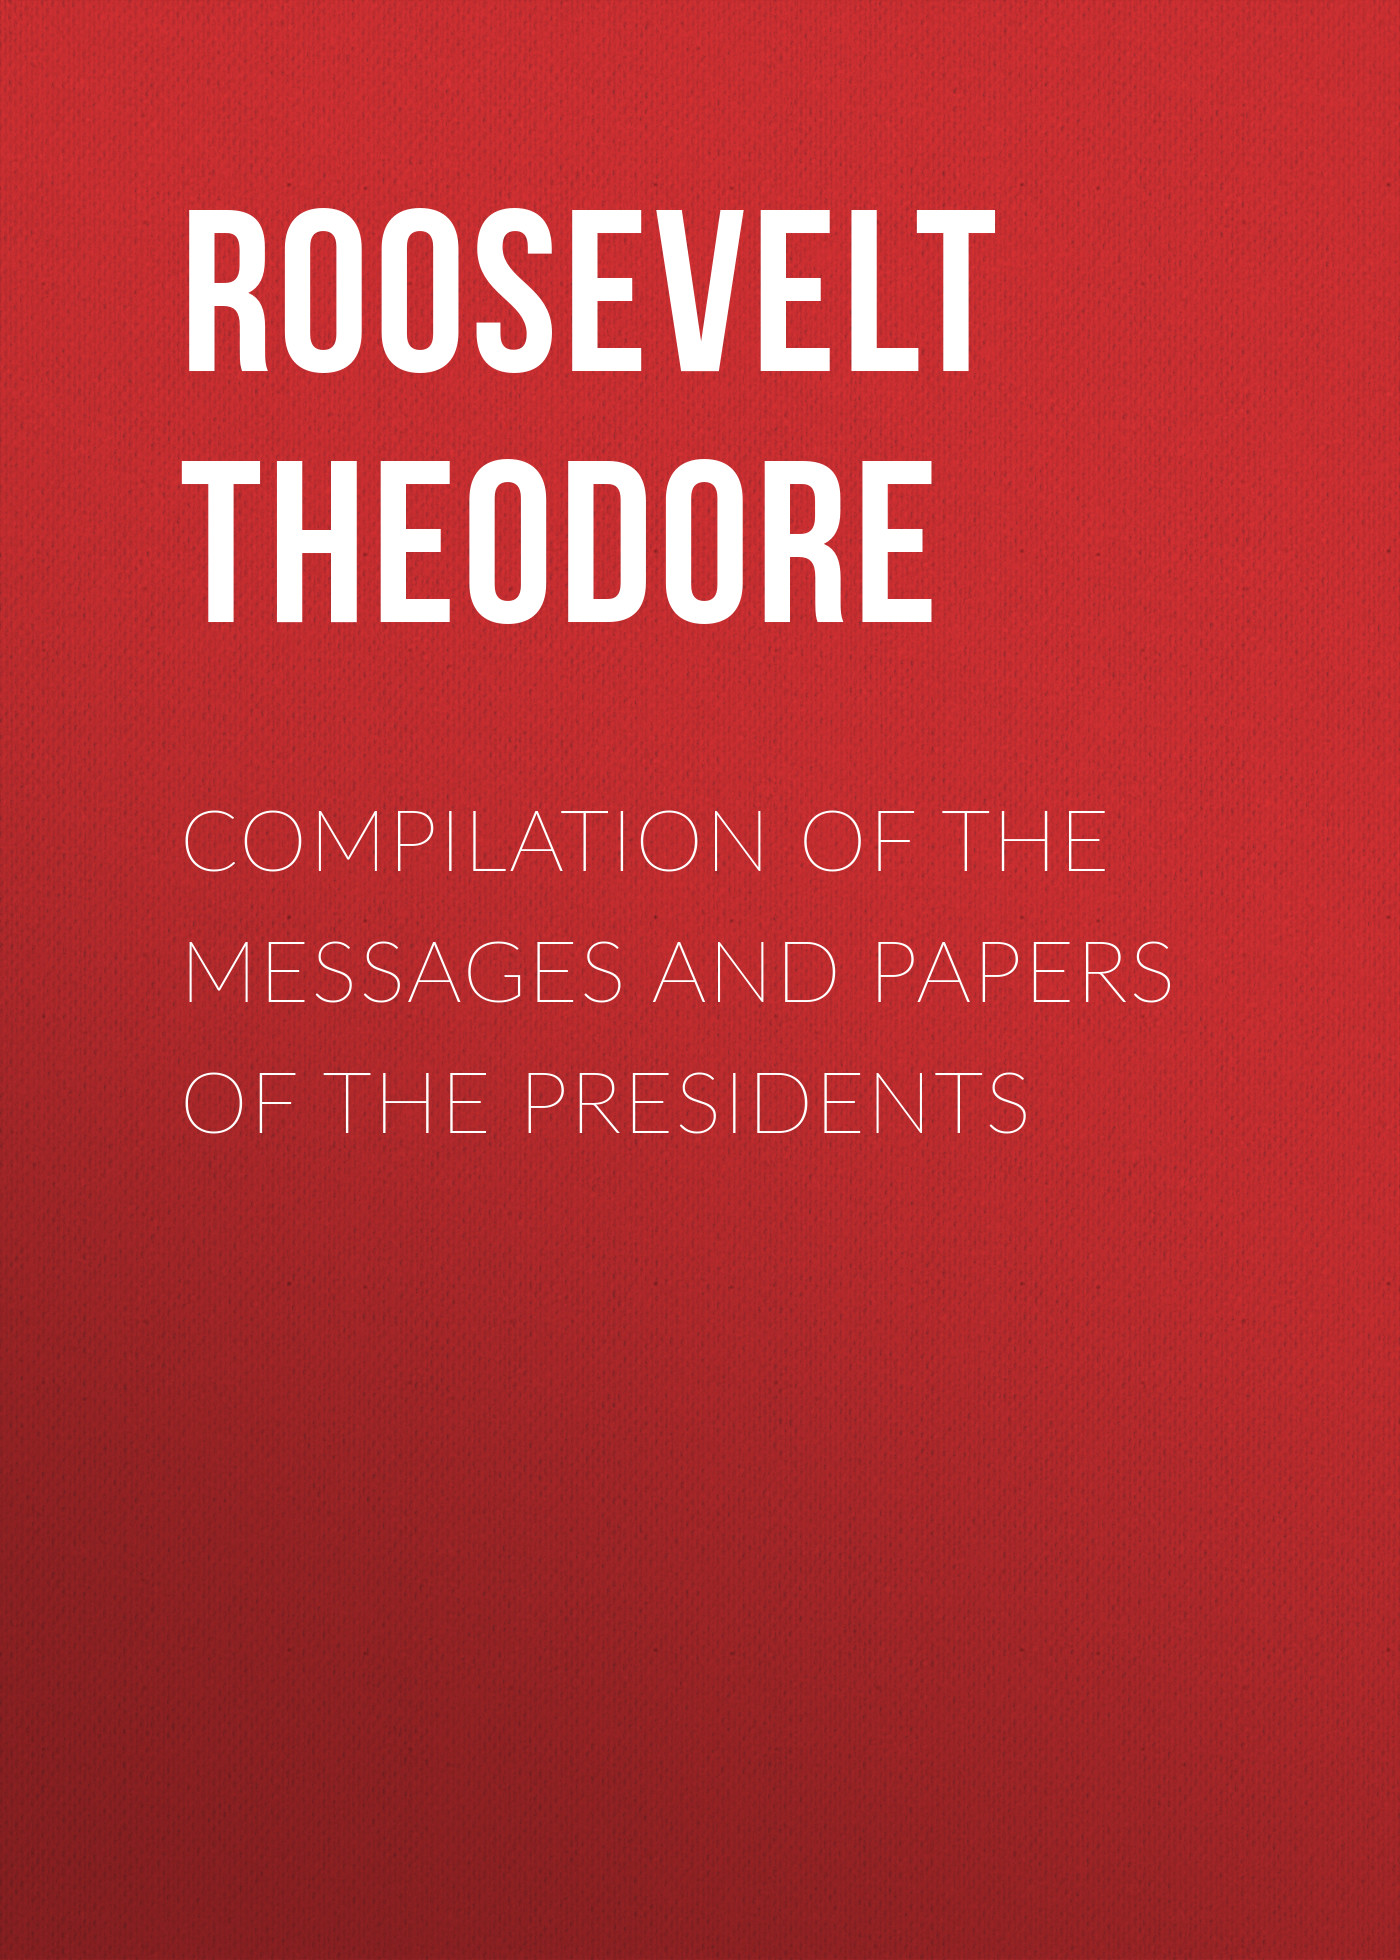 Roosevelt Theodore Compilation of the Messages and Papers of the Presidents winfield t durbin messages and documents of winfield t durbin governor of indiana